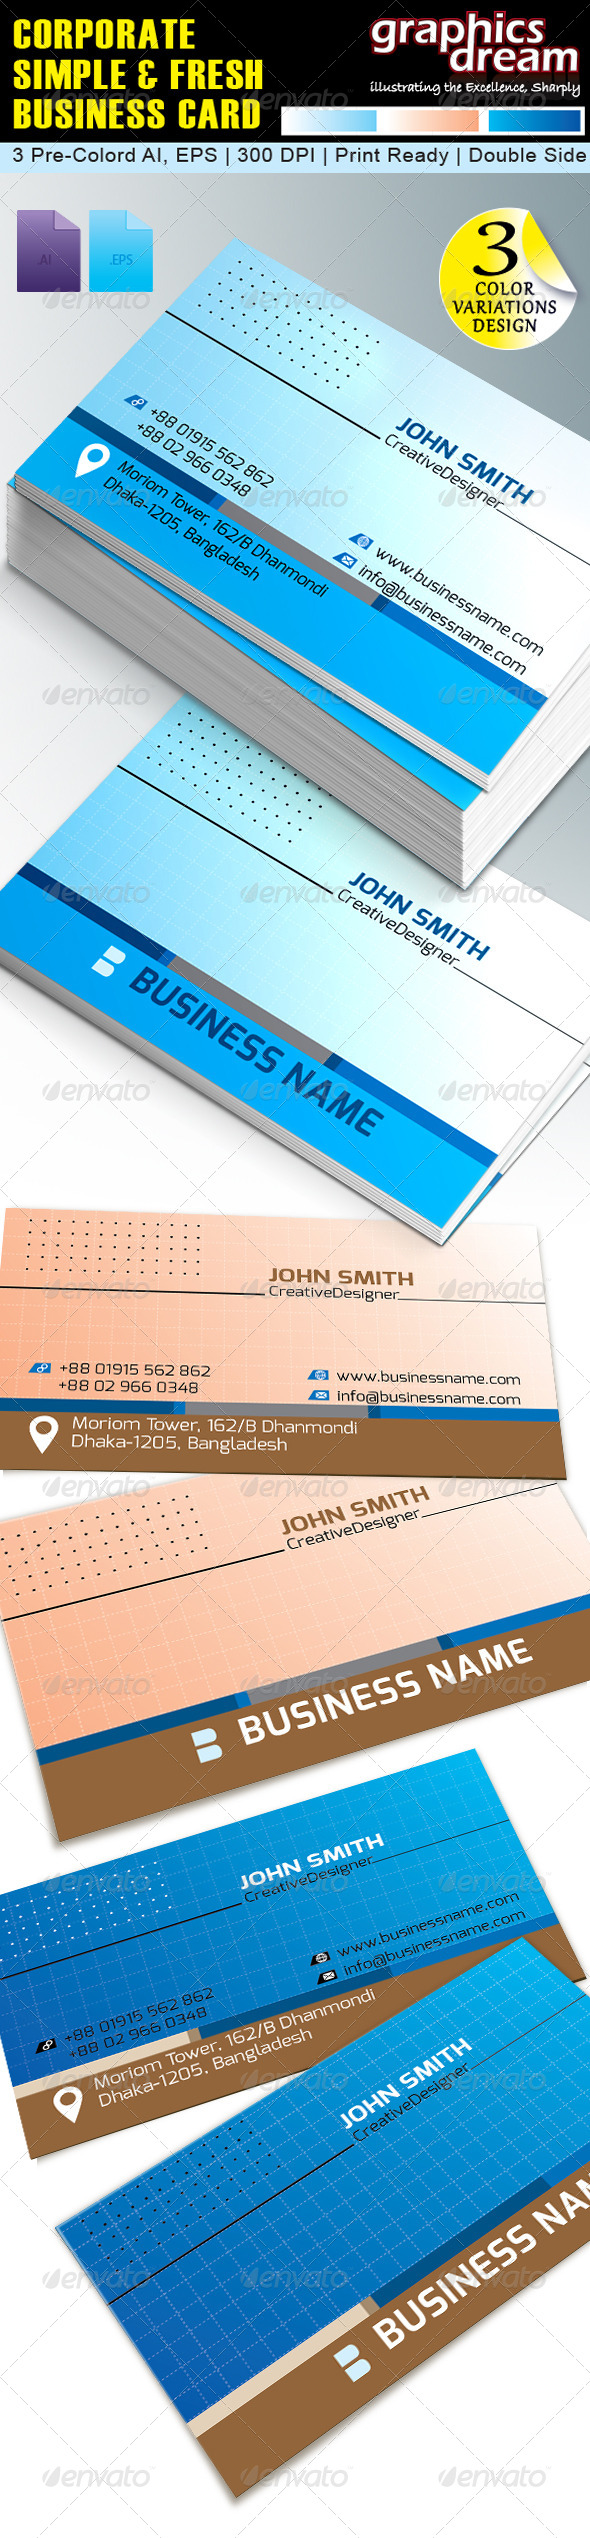 GraphicRiver Corporate Business Card GD002 5788423